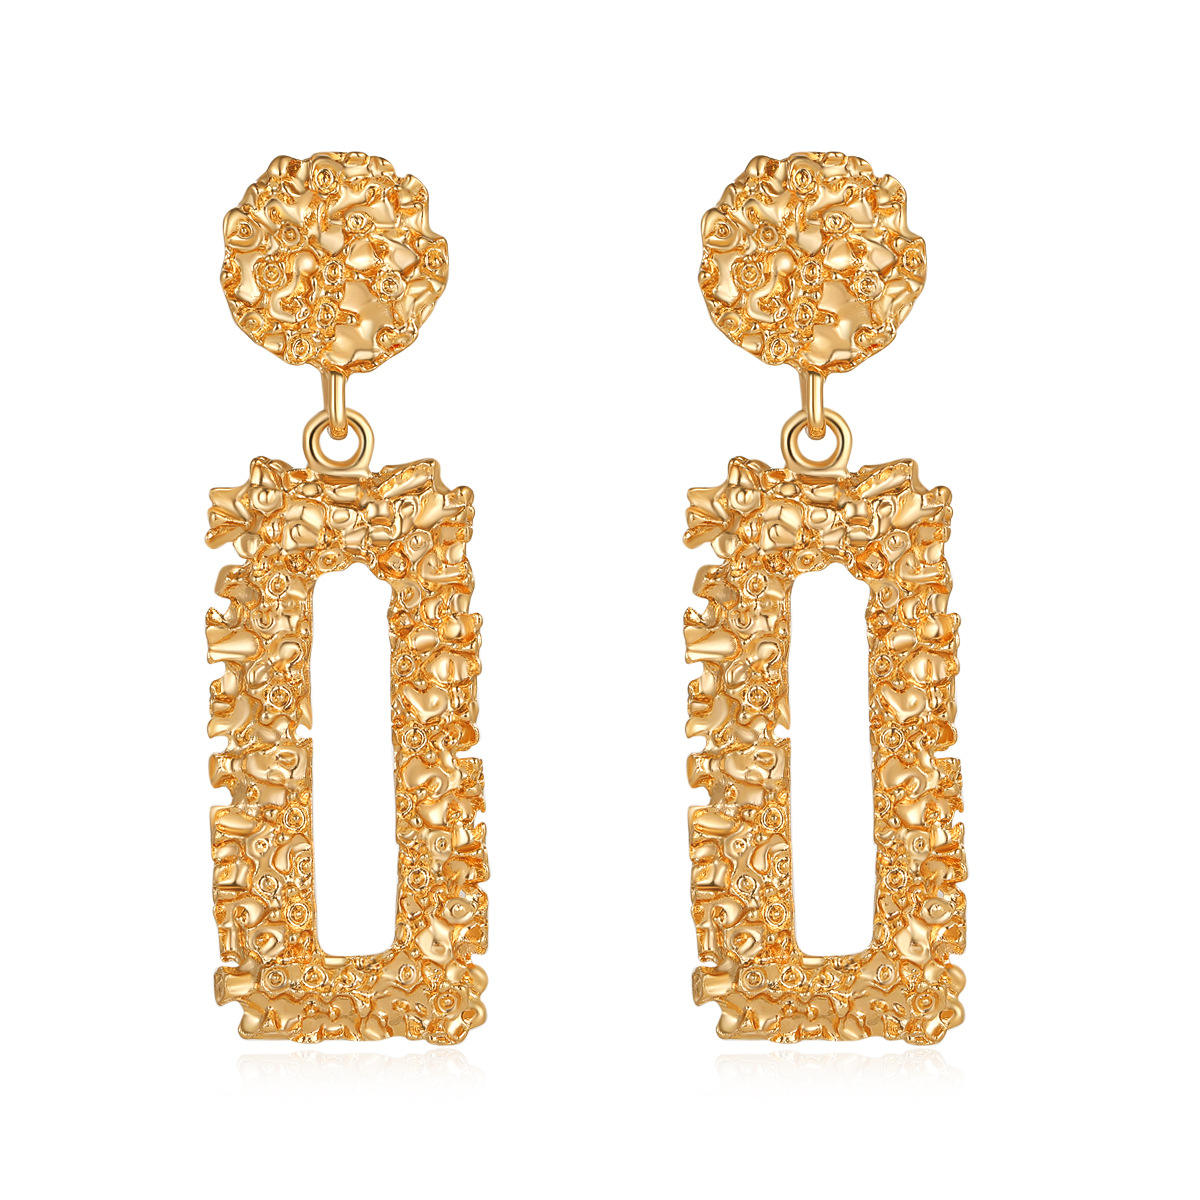 Fashion Accessories Zircon CZ Tassel Stud Earrings, Ladies Ear Ring Cute Trending Gold Earring Jewelry, earrings for women